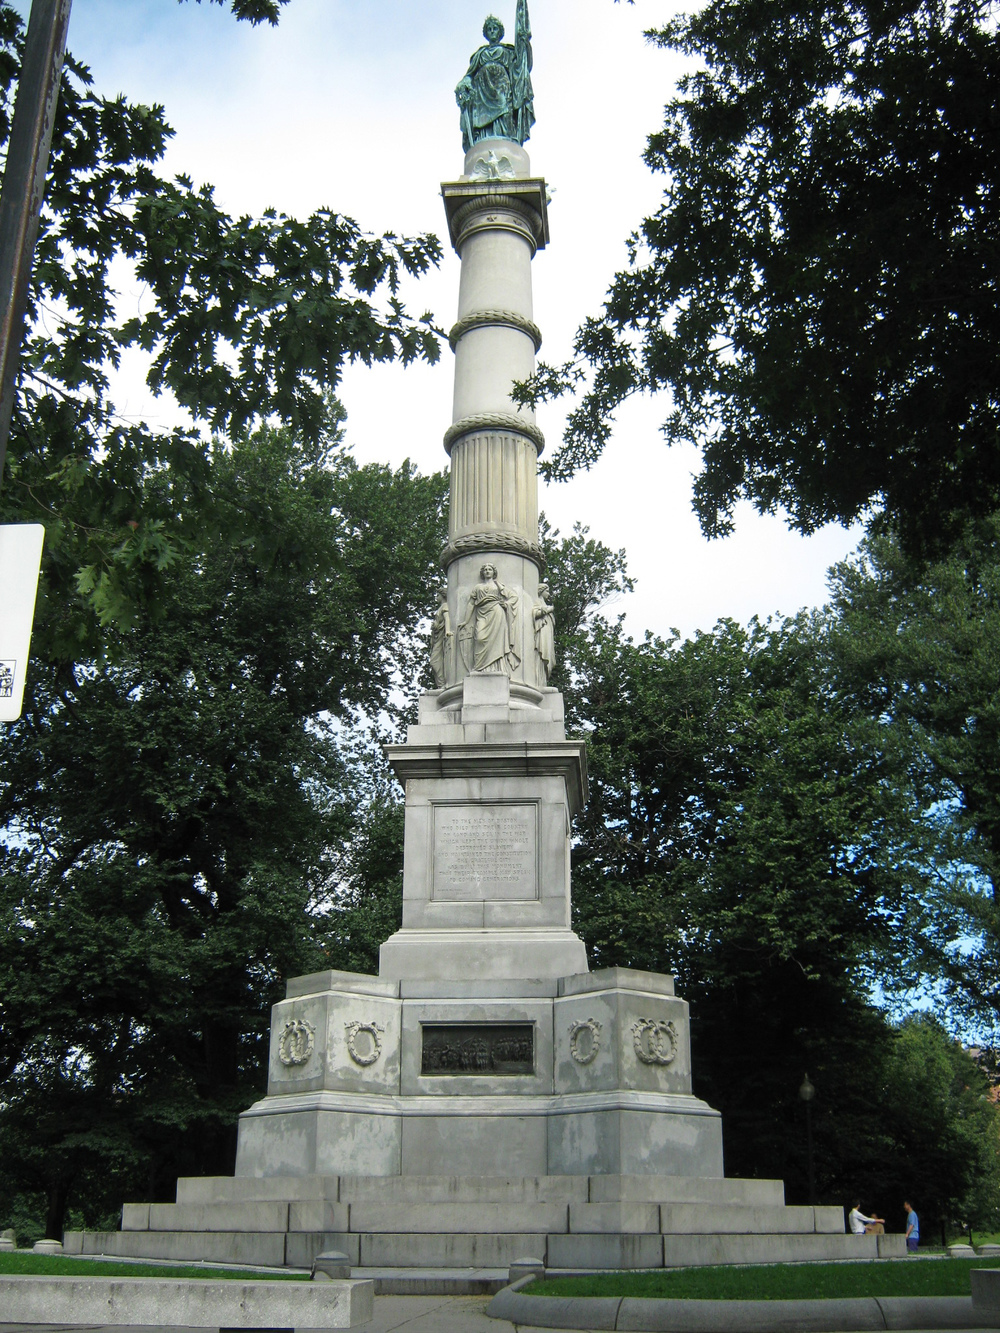 Sailors and Soldiers monument in the Boston Common